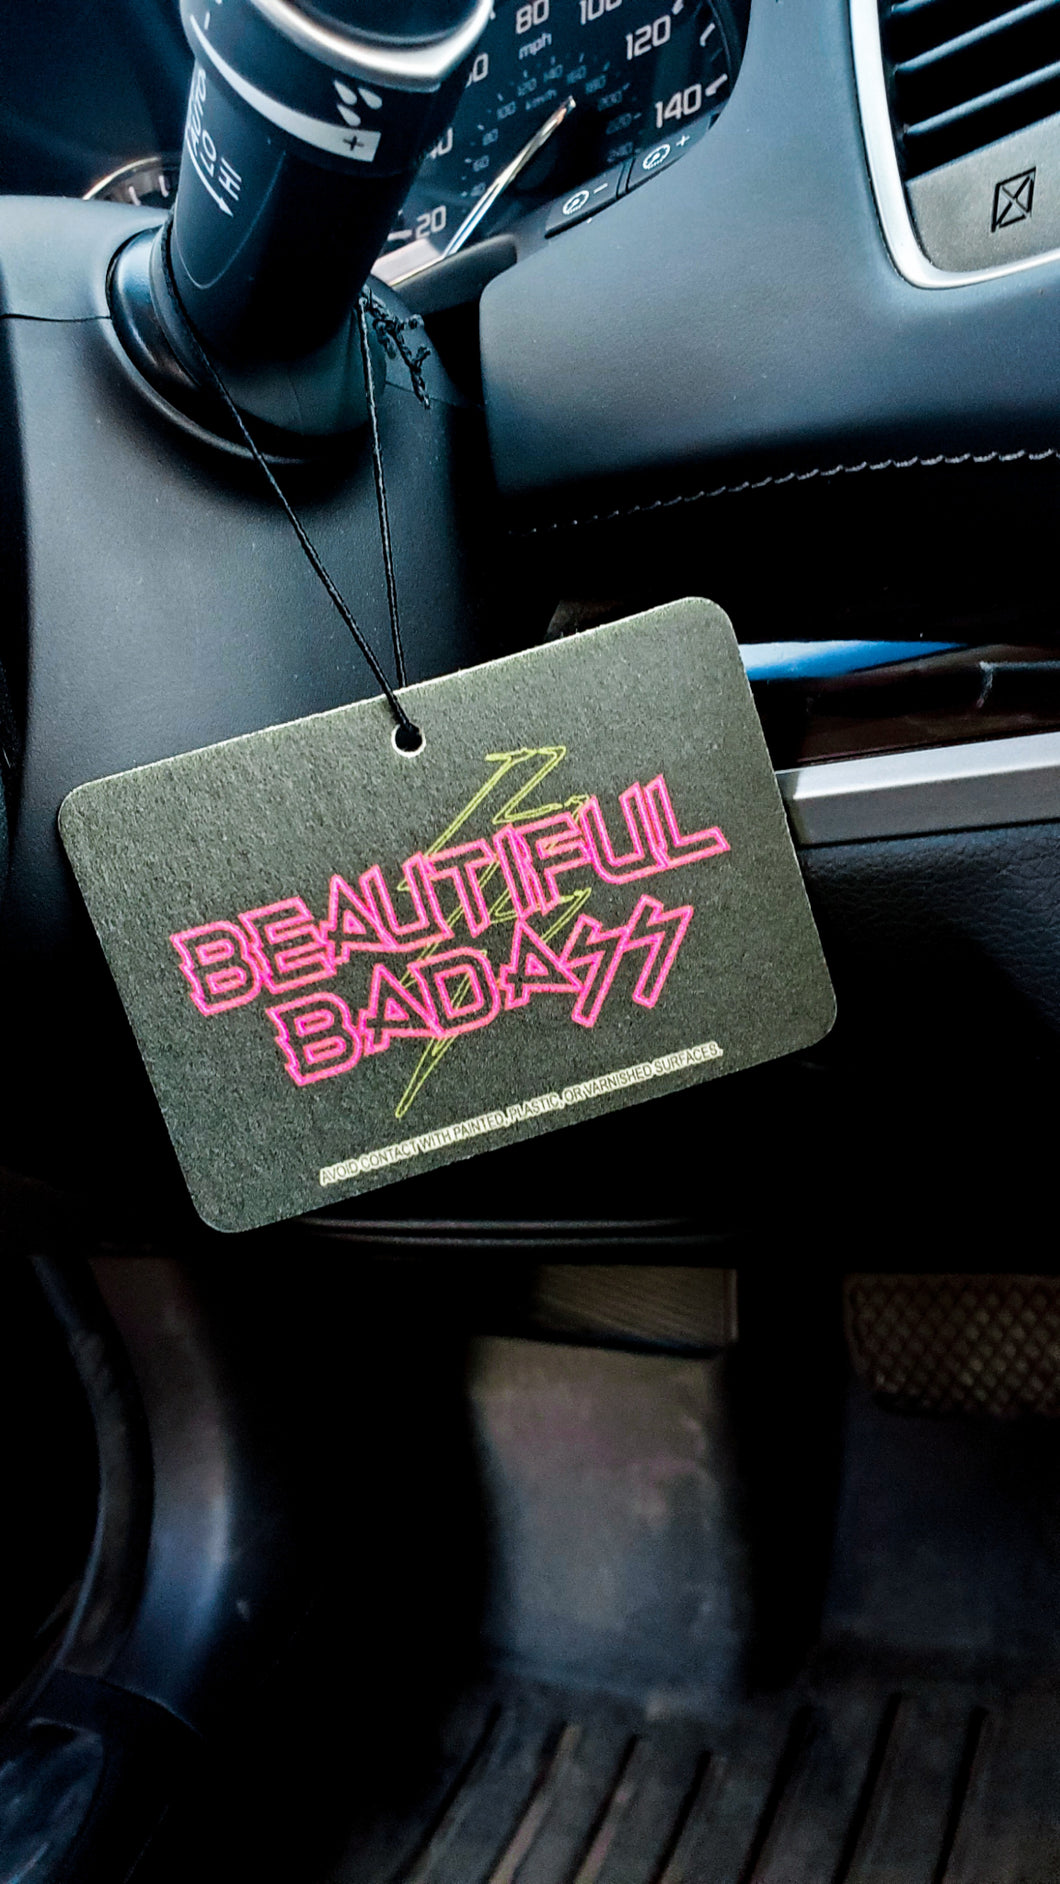 Beautiful Badass Air Freshener